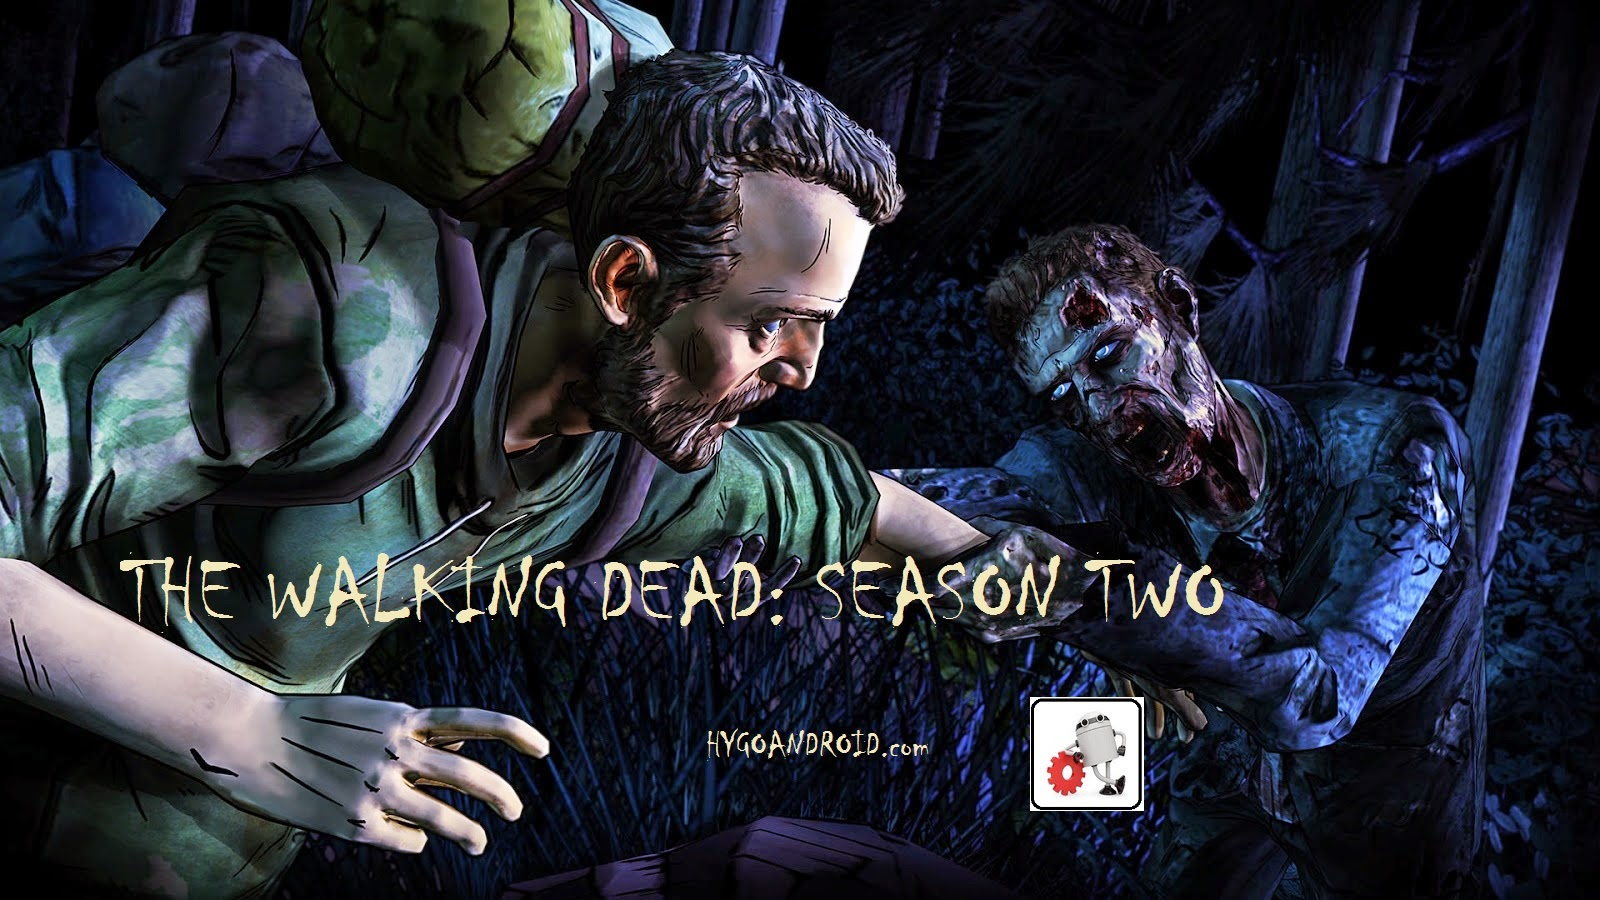 THE WALKING DEAD: SEASON TWO V1.15 APK